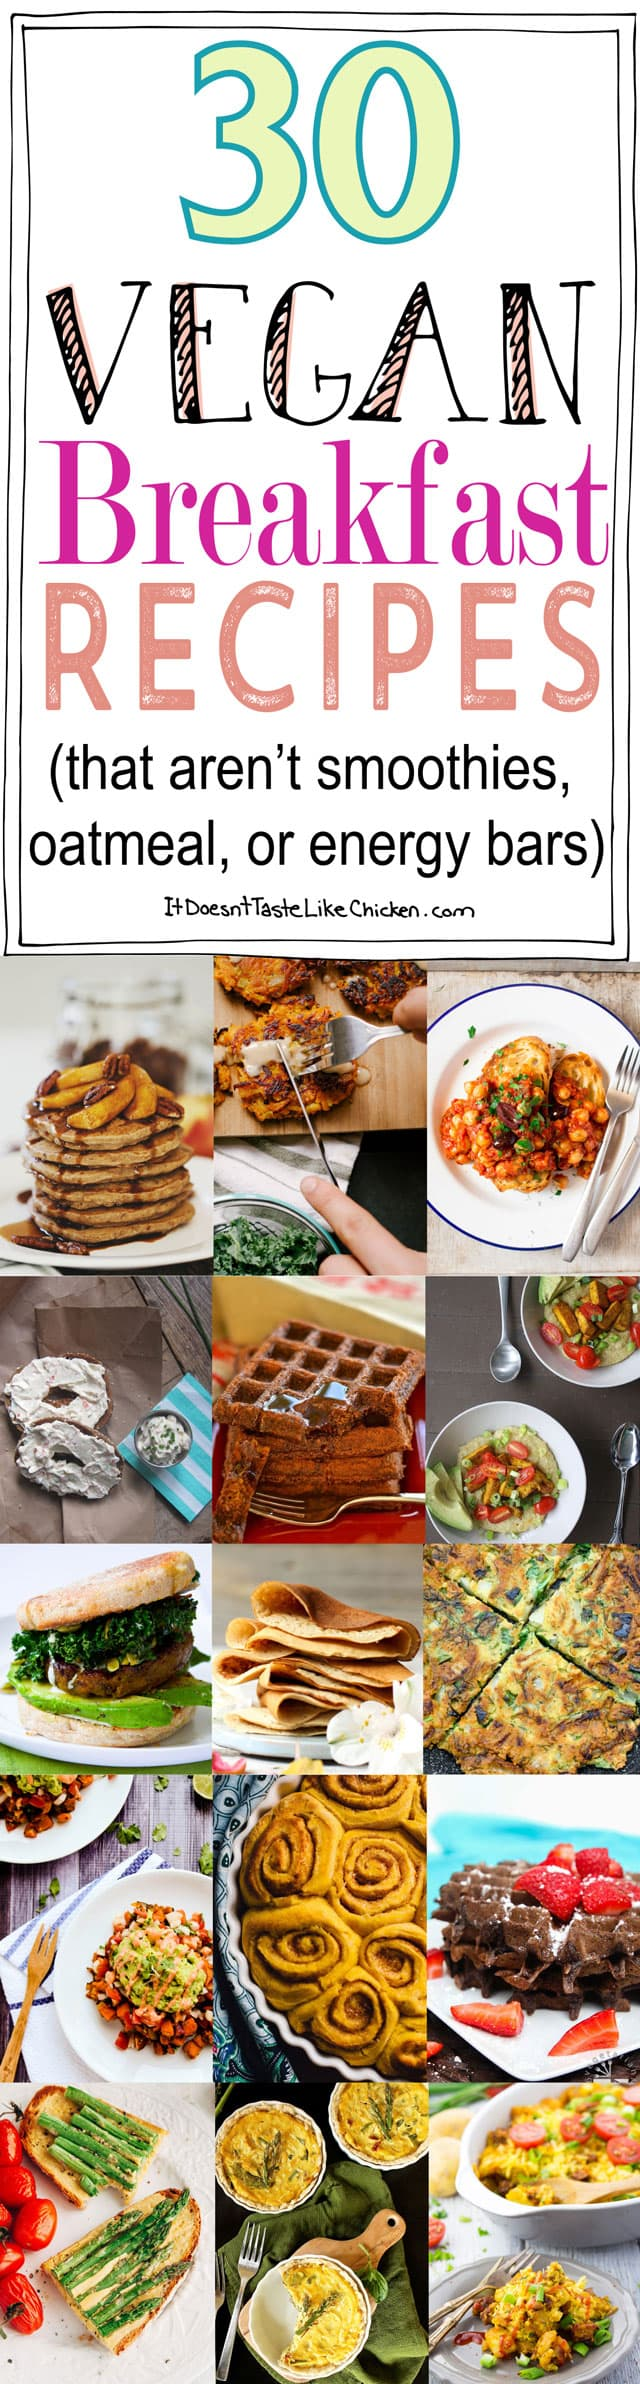 30 Vegan Breakfast Recipes That Aren T Smoothies Oatmeal Or Energy Bars It Doesn T Taste Like Chicken